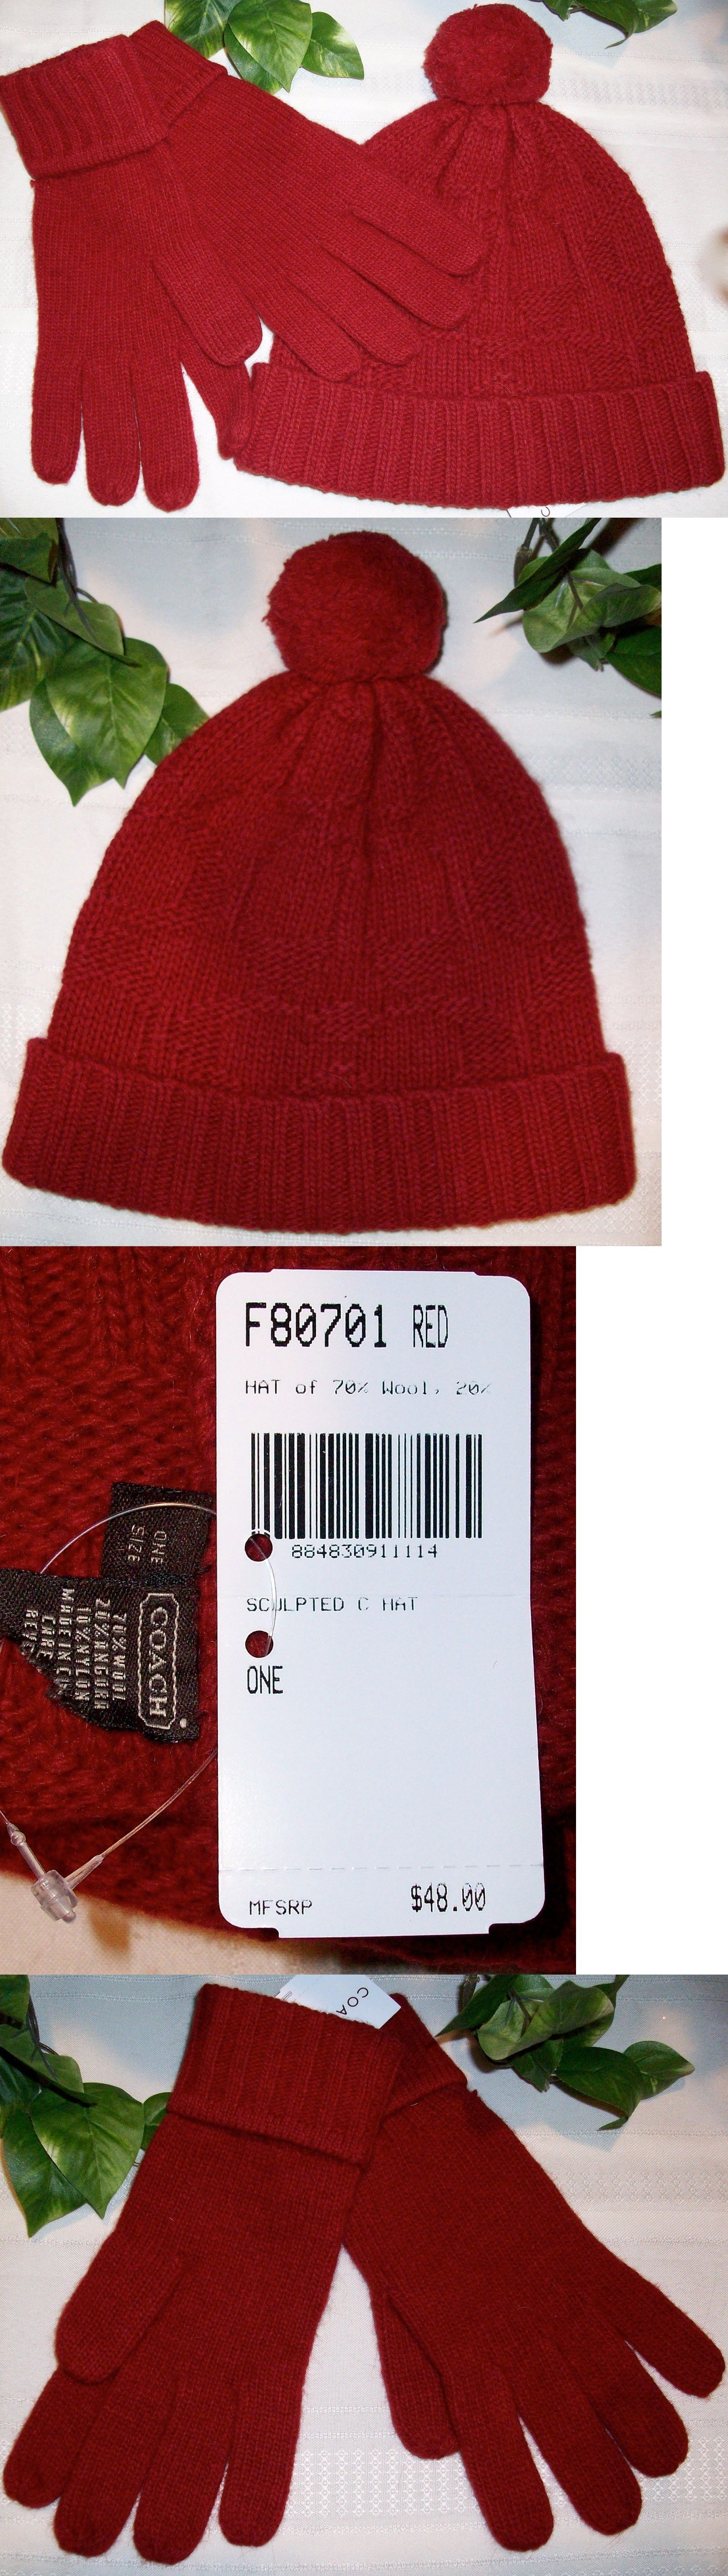 Mixed Items and Lots 15738: Coach Sculpted C Hat 80701 Sculpted C Gloves 80703 Set Red Nwt Wool Blend -> BUY IT NOW ONLY: $47.99 on eBay!